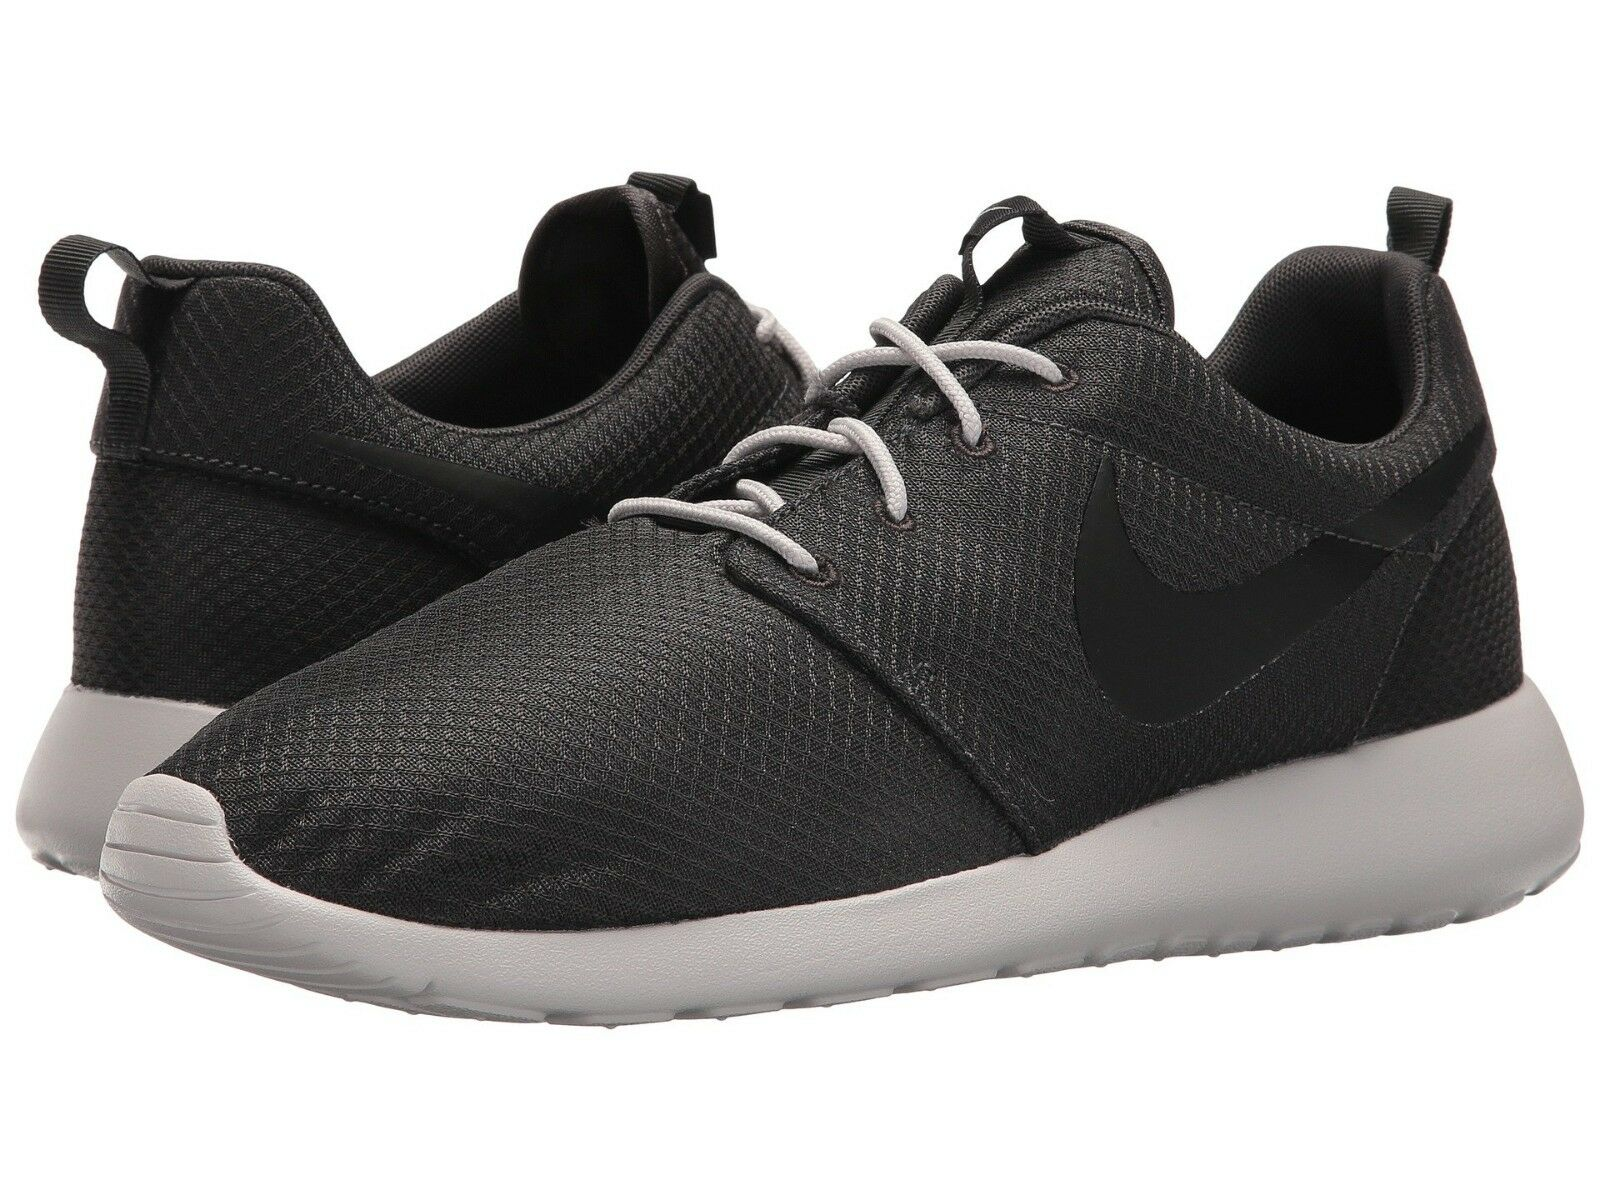 Nike Roshe One Casual Shoes Anthracite/Black Sizes 8-12 New In Box